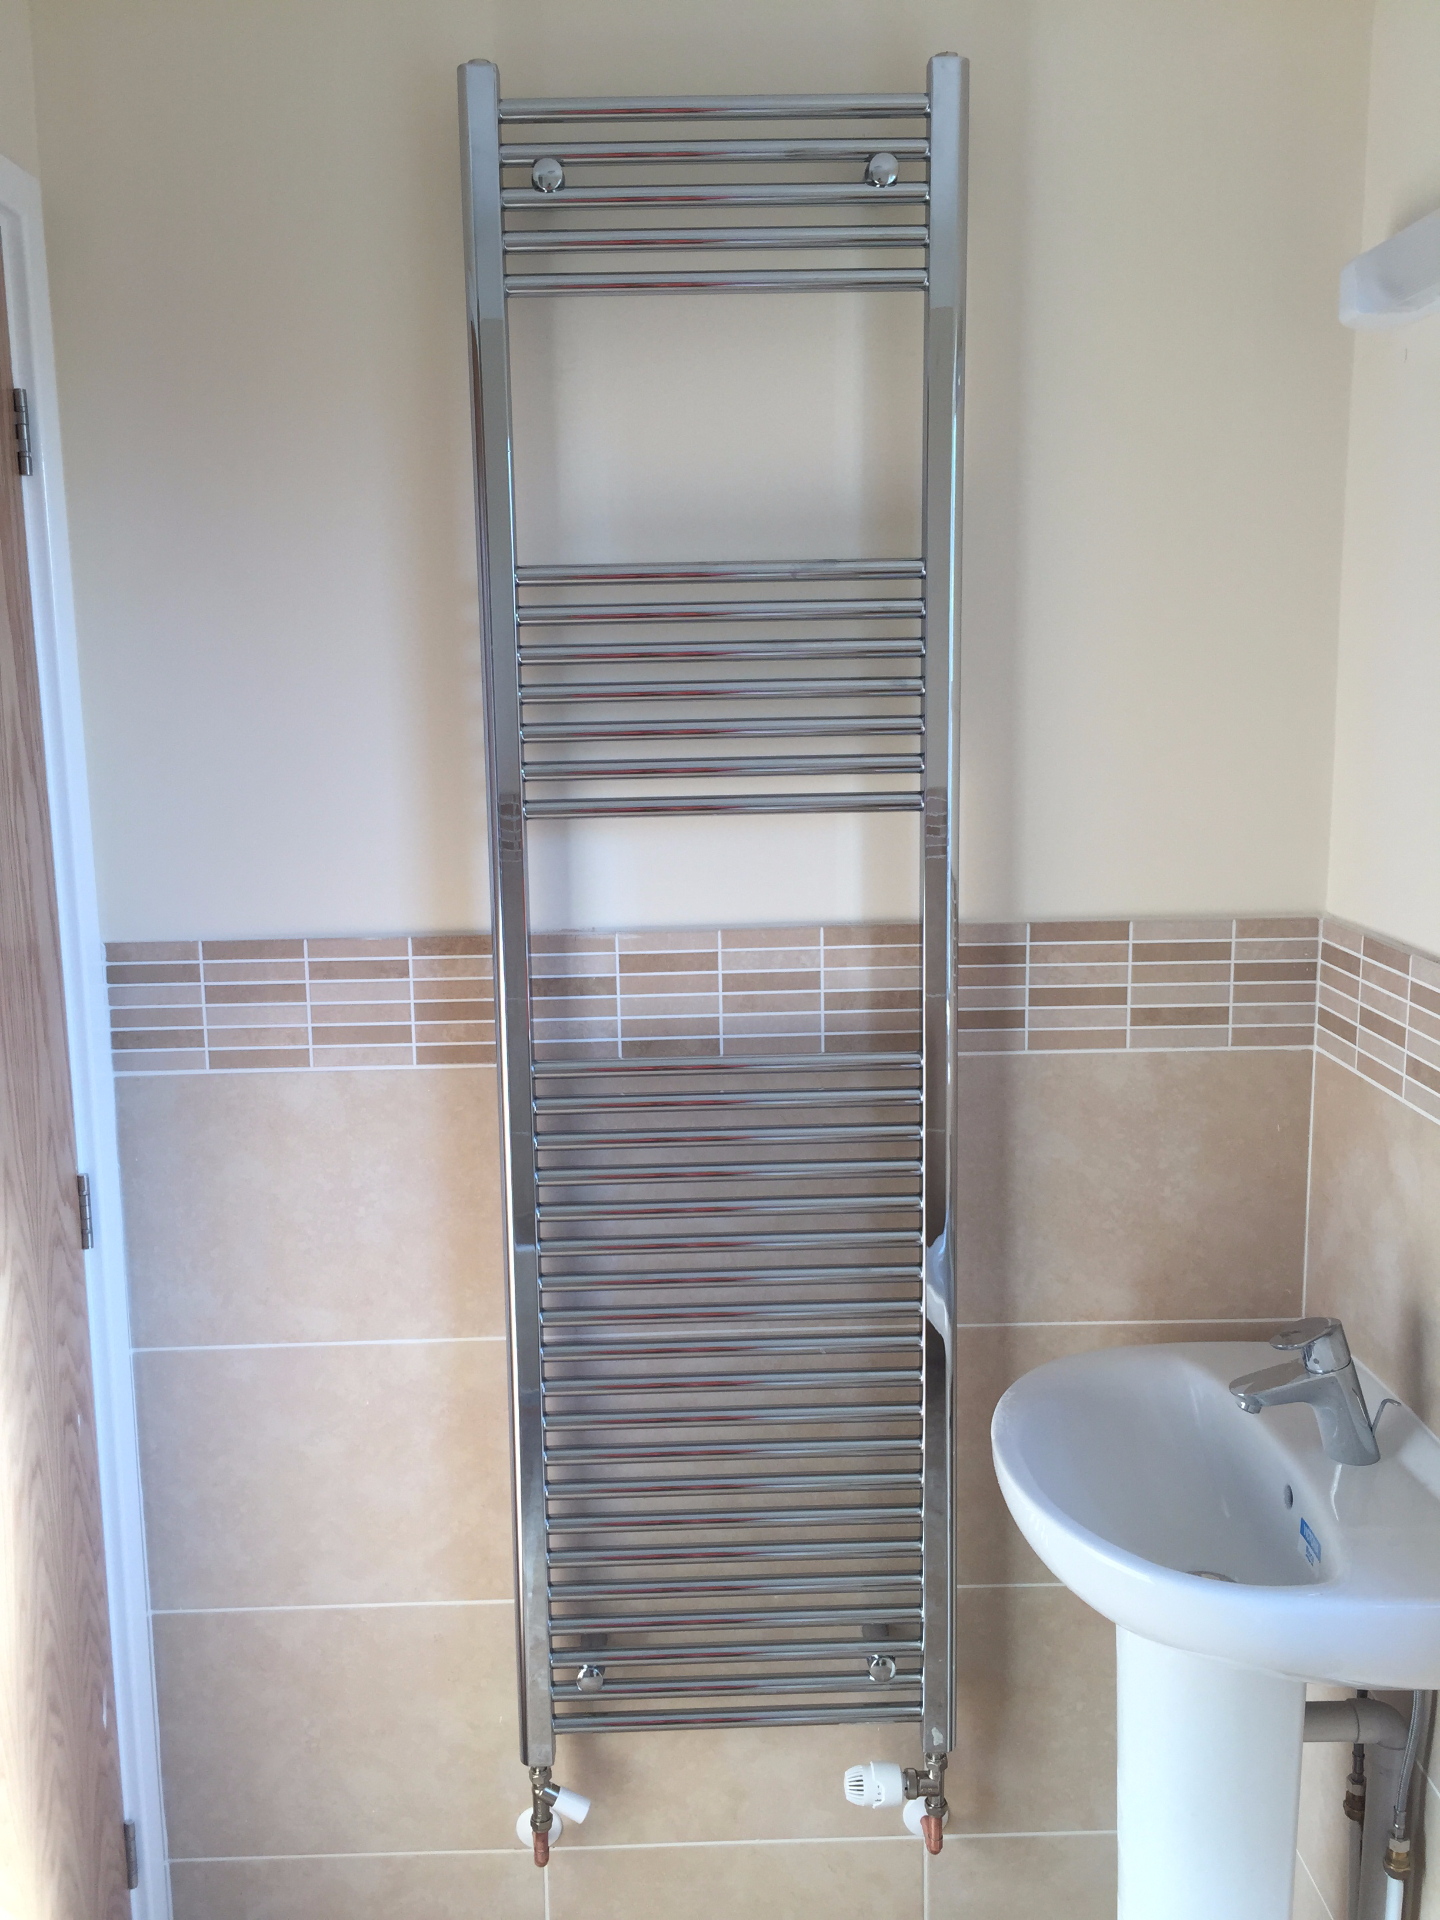 Large towel rail